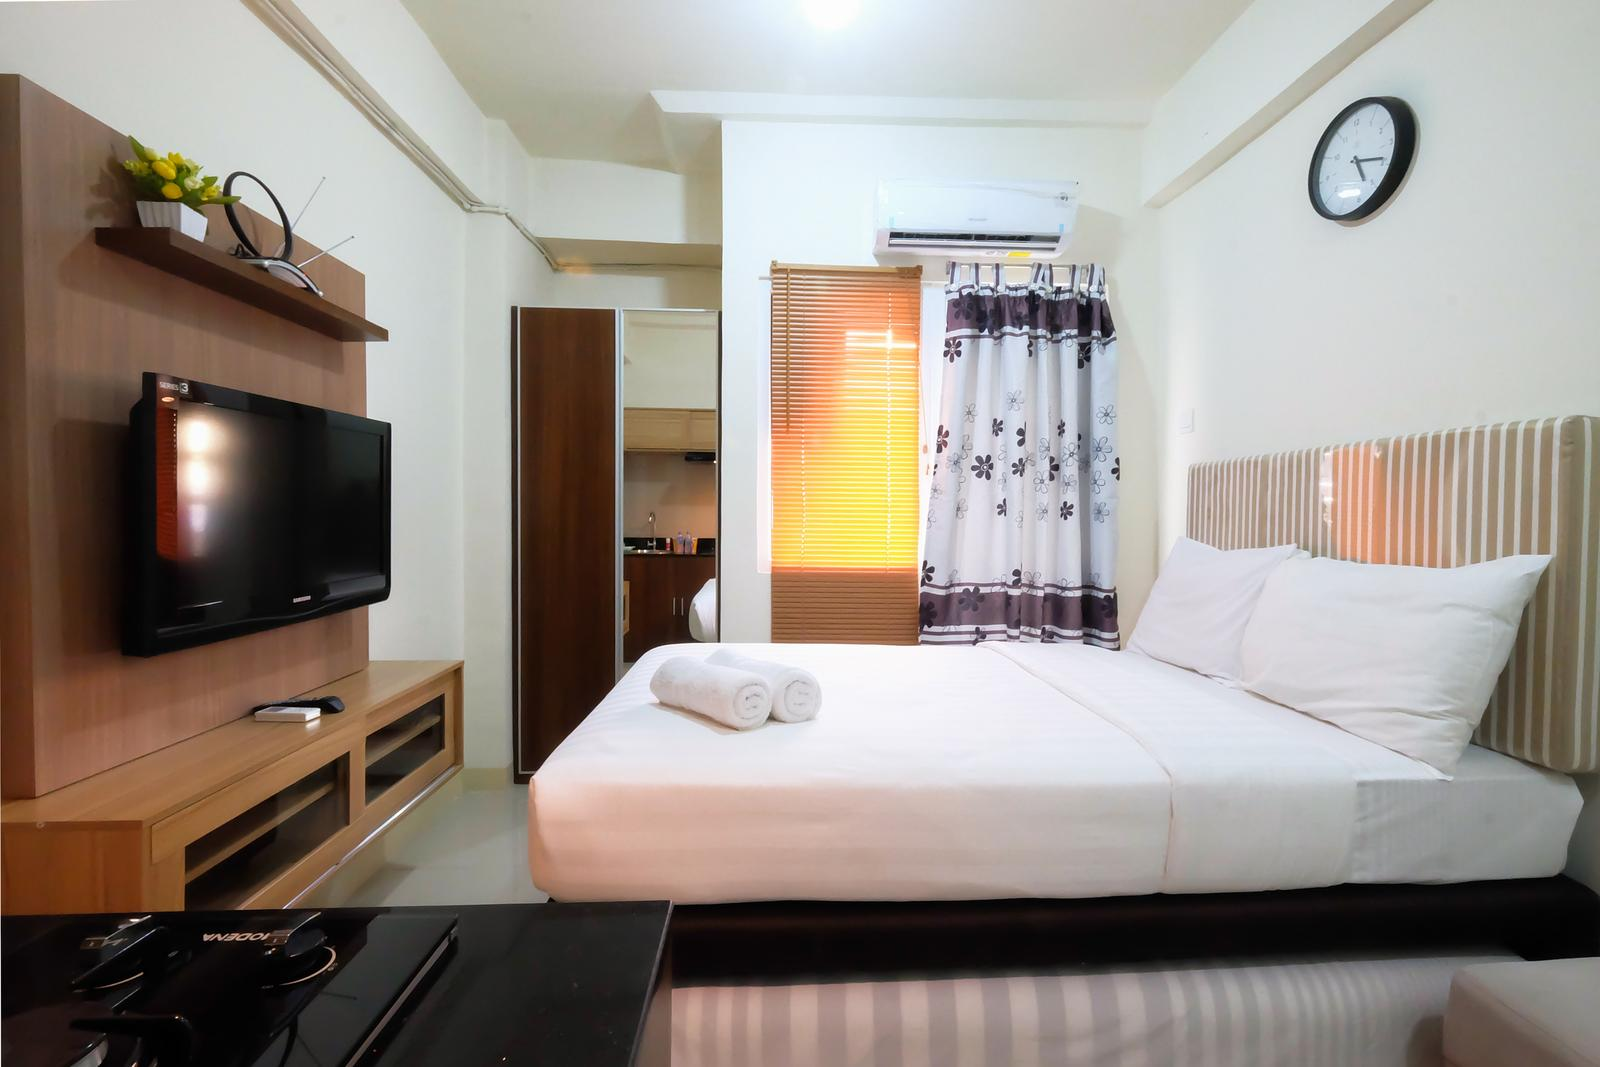 Green Pramuka Cempaka Putih - Studio Green Pramuka City Apartment with Mall Access By Travelio